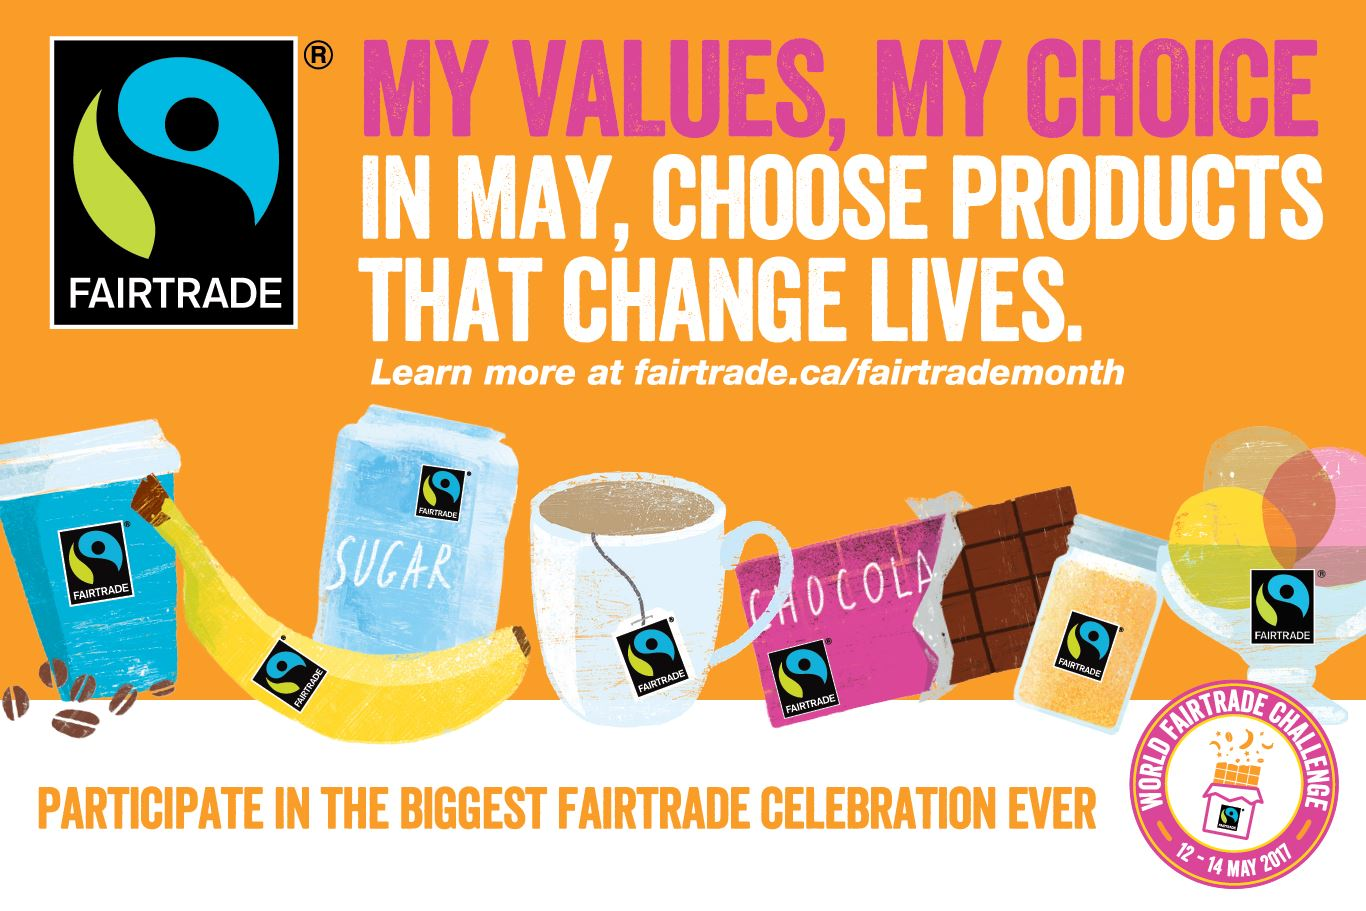 Month of May is #FairtradeMonth in #Canada! What will you be up to? https://t.co/iVJBLG6L9c https://t.co/zUBDHk4tUW